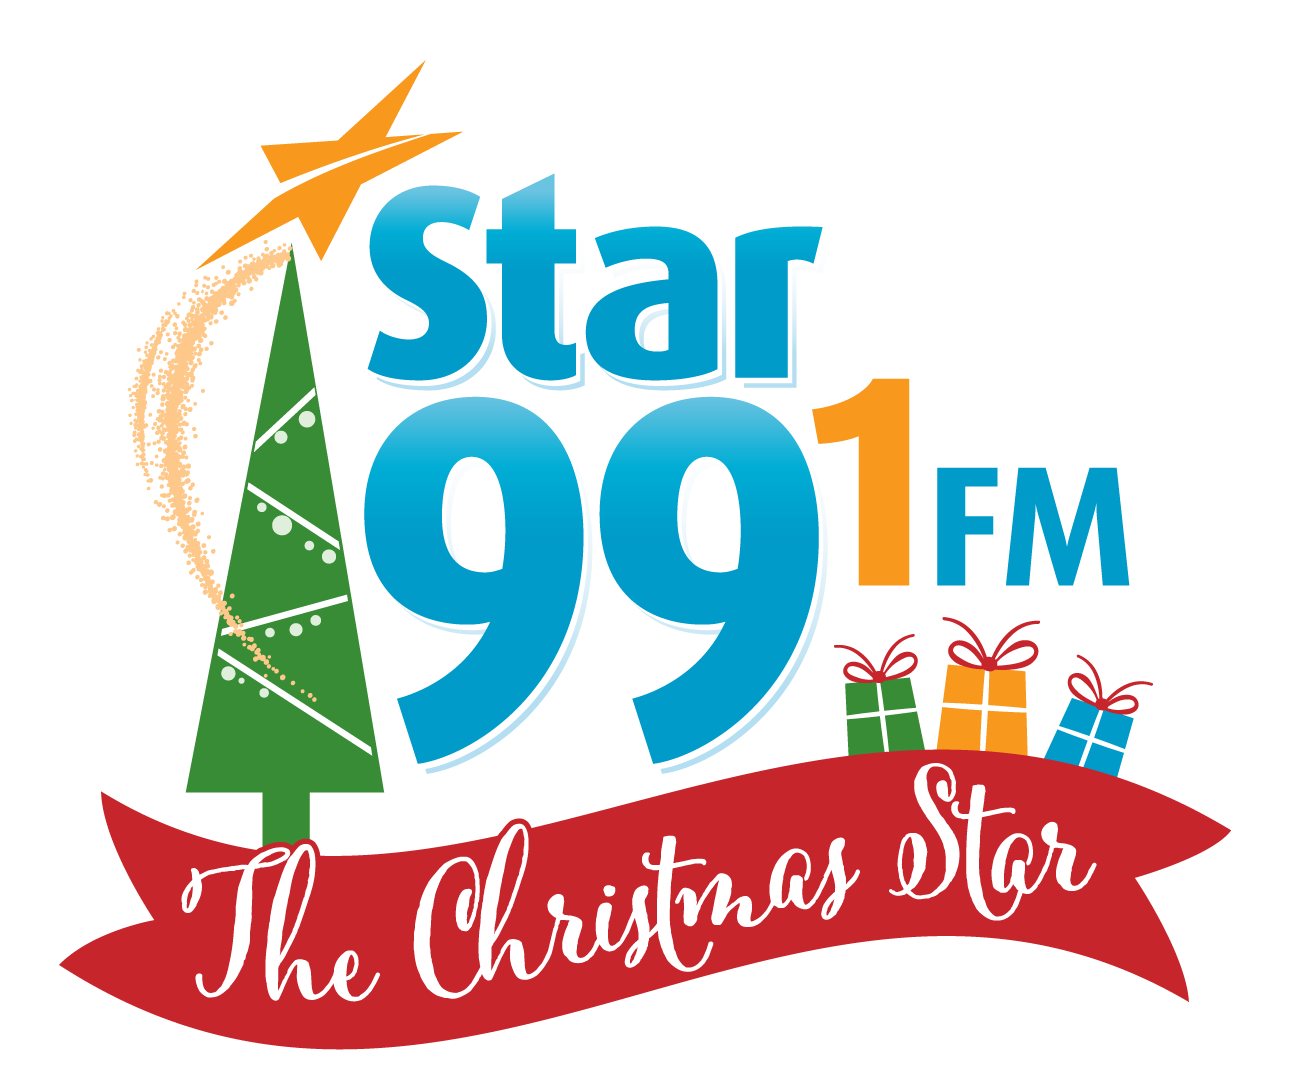 99.1 Christmas Music 2020 Star 99.1 Playing Only Christmas Music Through Dec. 25   The